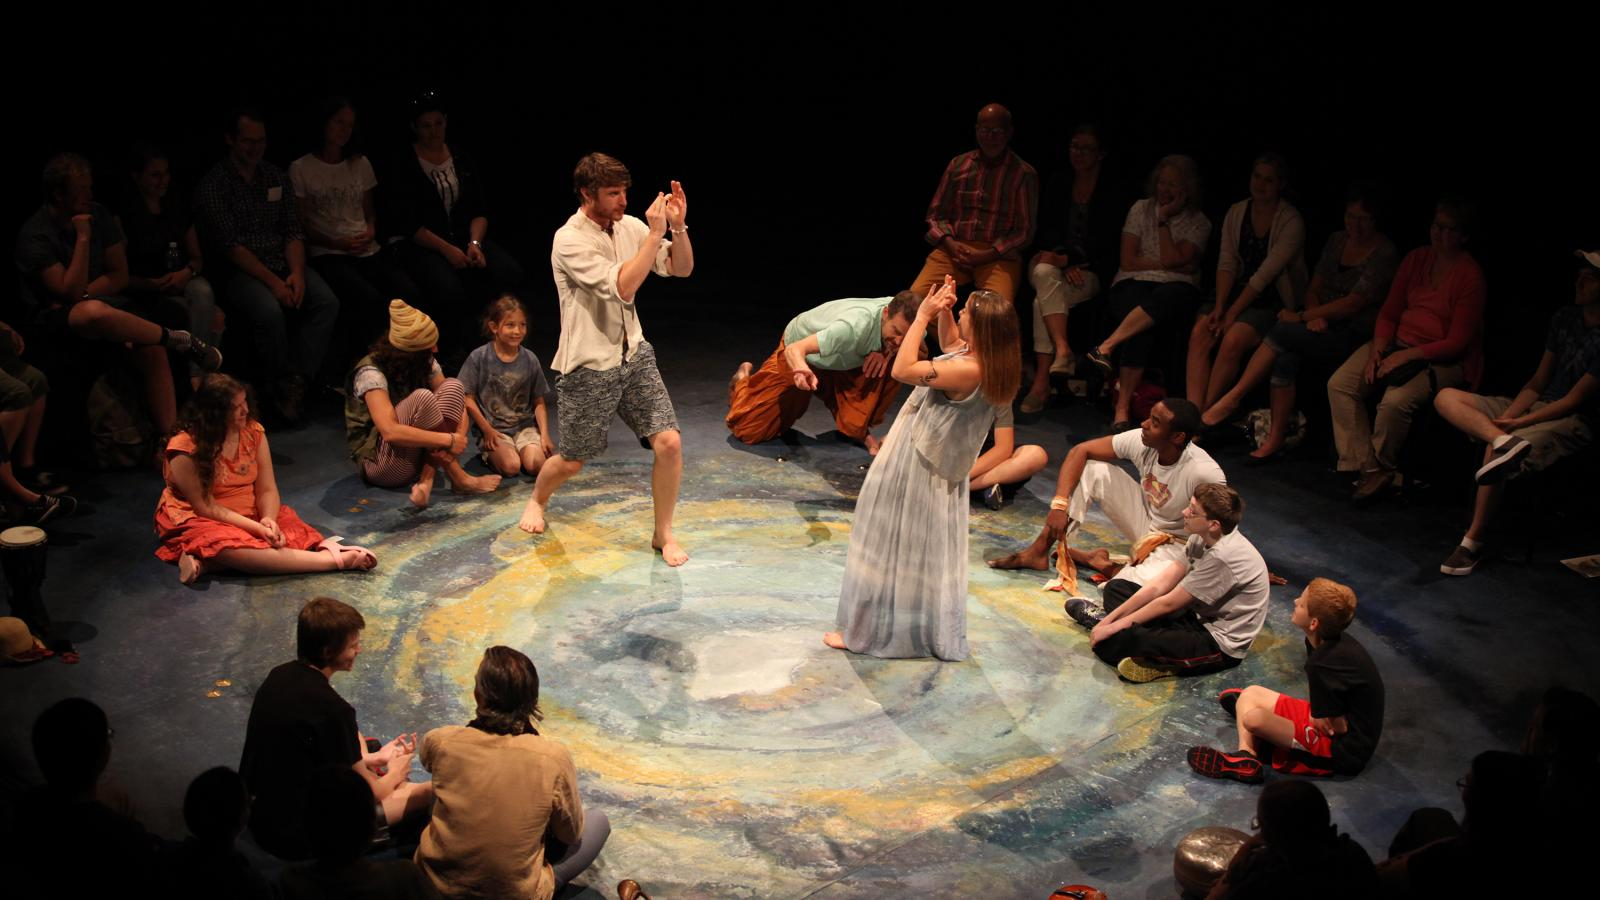 Two actors perform in The Tempest for an audience of young people on the autism spectrum who are seated on the stage in a circle.